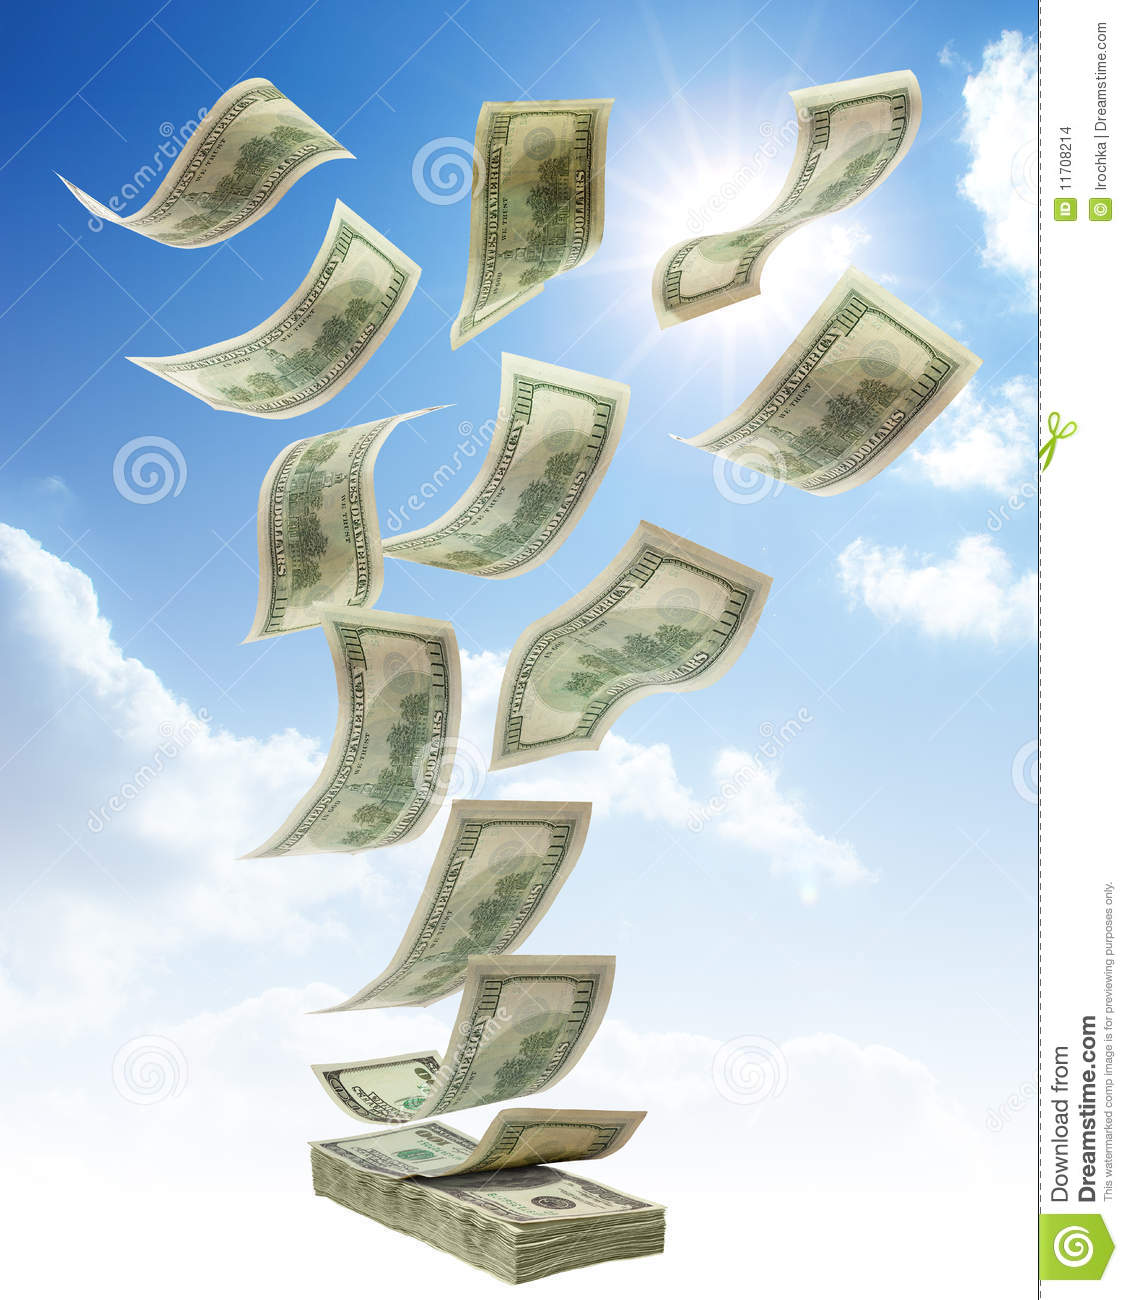 Money falls from the sky essay